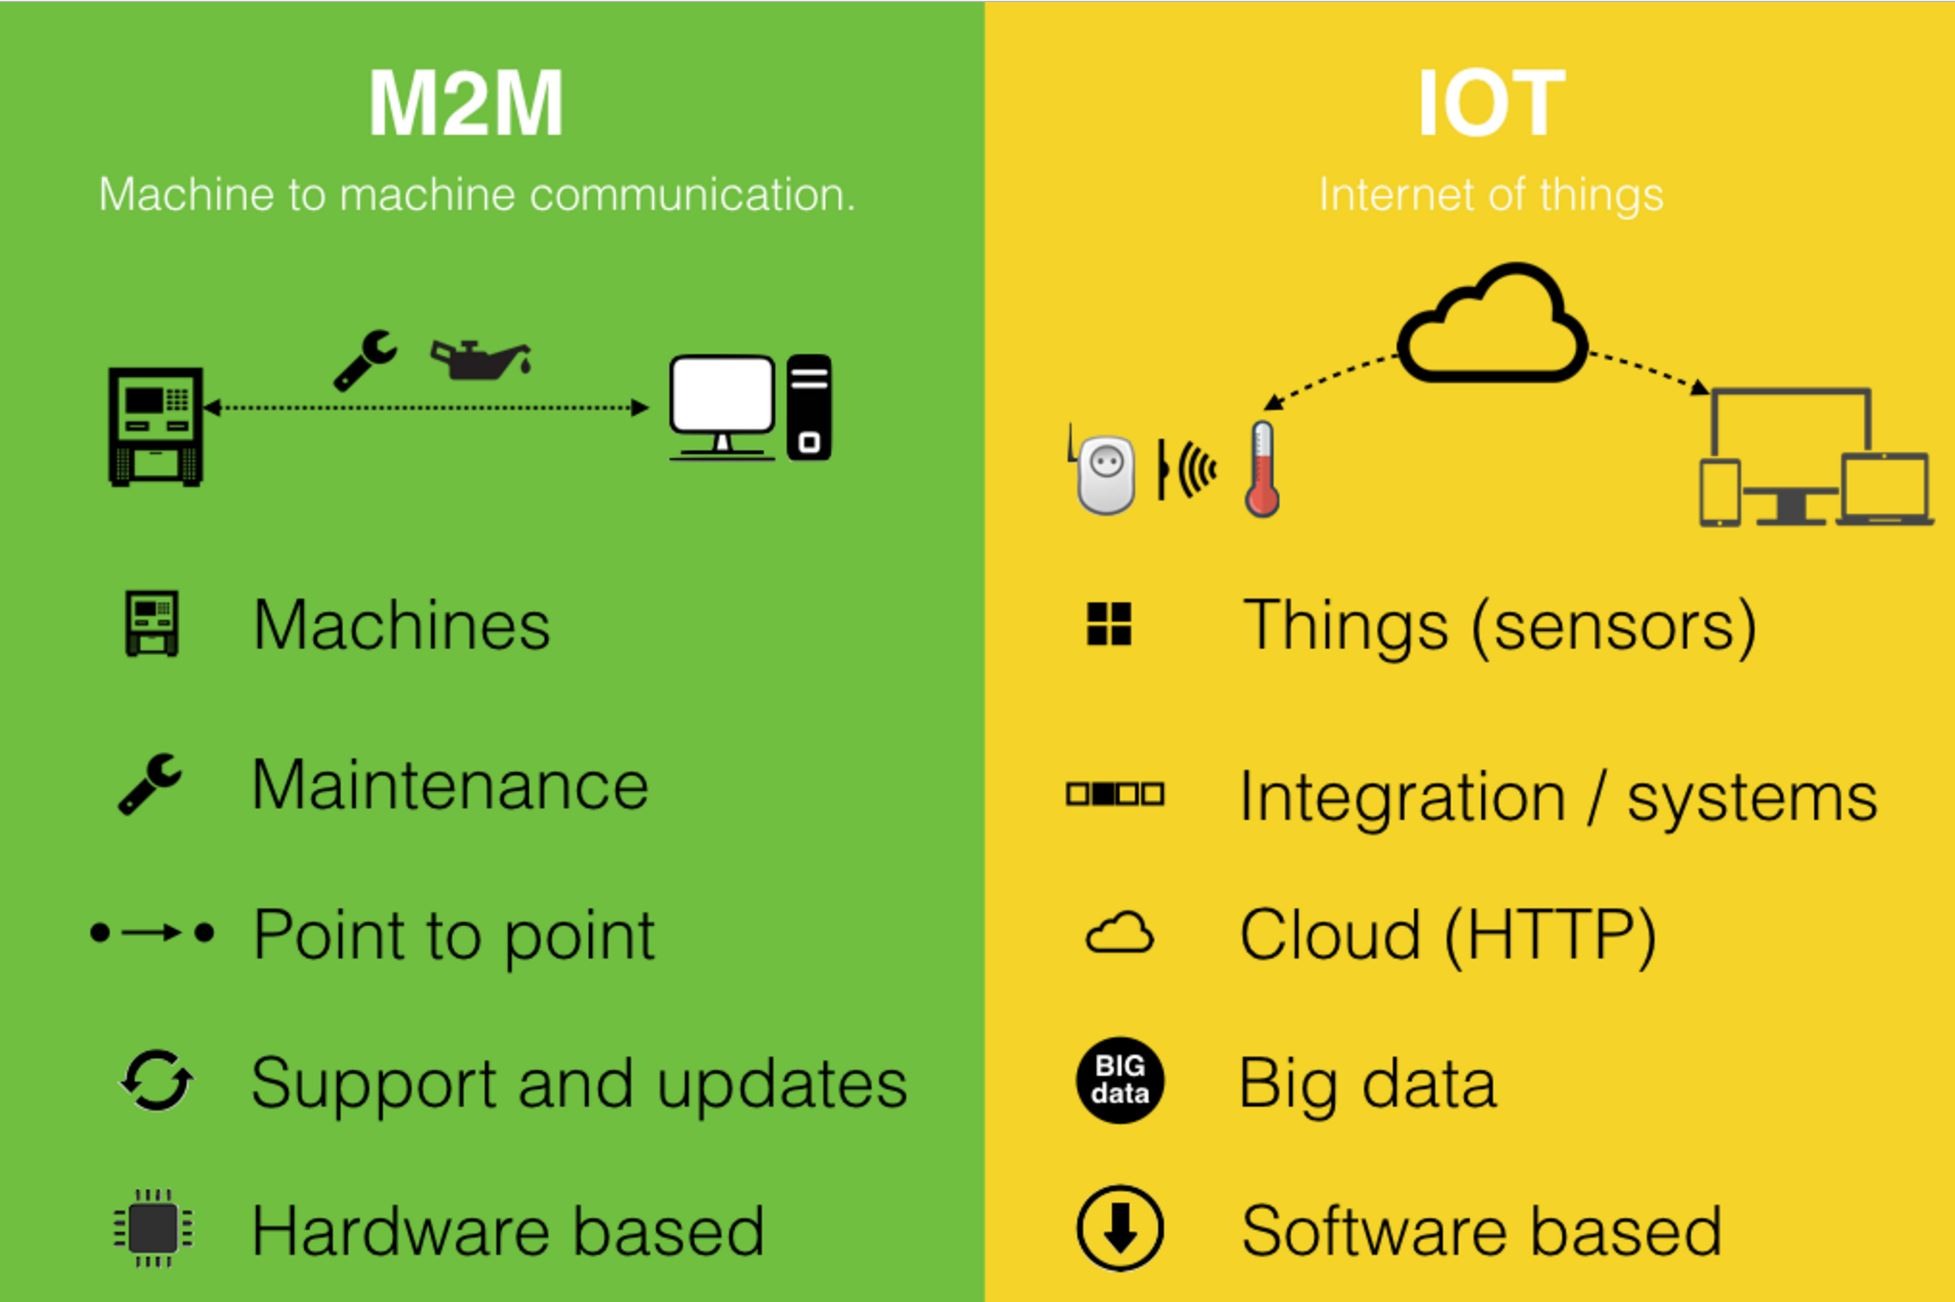 IoT & M2M Difference internet stuff the internet of things examples iot one m2m iot solutions iot and m2m examples of machine to machine communication IoT & M2M Difference internet stuff the internet of things examples iot one m2m iot solutions iot and m2m examples internet of thing define internet of everything hp internet of things internet of things europe internet of things graphic internet of things privacy  web of things vs internet of things data analytics internet of things internet of things security companies internet of things europe  machine to machine learning data analytics growth data analysis technologies big data analytics vendors what are iot applications  iot in business best thing on the internet cloud computing and business why use cloud computing technology best cloud computing service the cloud server why use cloud computing technology best cloud computing service the cloud server define cloud computing technology cloud for business use companies cloud computing cloud computing infrastructure as a service cost of cloud computing services how does the cloud computing work best cloud services for business cloud computing email top cloud computing service providers cloud computing server cost best cloud technology cloud computing for small business cloud computing services companies implementation of cloud computing companies that provide cloud services using the cloud for business popular cloud computing services cloud storage computing different cloud computing services cloud computing solution providers cloud computing network biggest cloud computing providers private cloud technology cloud computing players explain cloud technology cloud and business best cloud hosting services cloud computin cloud computing firms leaders in cloud computing cloud hosting companies cloud computing services providers latest cloud computing technologies internet cloud services cloud technology companies cloud computing services for small business clould computing cloud computing website cloud computung cloud hosting provider with cloud computing where is the software located different cloud services best business cloud services best cloud service for business web services and cloud computing cloud computer services how to explain cloud computing define cloud services cloud services for business cloud comp when was cloud computing introduced use of cloud computing applications and services cloud technology benefits server cloud computing cloud computing in business why cloud computing is good cloud computing leaders the cloud in cloud computing refers to the cloud hosting services offered by cloud computing cloud computing site cloud service for business what is a cloud on a computer business cloud computing top cloud computing companies cloud computing companies cloud computing def information technology cloud computing clouds services cloud computing hosting applications that use cloud computing cloud in computer terms cloud network technologies iaas cloud computing cloud computing refers to business cloud services cloud commuting cloud services definition clod computing what is a cloud solution network cloud computing cloud based it services email cloud services companies that use cloud computing computer cloud network cloud computing for businesses why use cloud technology behind cloud computing cloud computing platforms cloud services the cloud service cloud computing iaas cloud service providers cloud it services cloud computing providers cloud as a service cloud computing software companies cloud based services cloud infrastructure define the cloud computing understanding cloud computing private cloud computing companies cloud computing service the cloud internet leading cloud computing companies cloud computing and networking what is cloud technology concept cloud service hosting the cloud computing the cloud system cloud programs cloud computing vendors providers of cloud computing what is cloud computing and how does it work cloud computer storage computing as a service cloud computing usage enterprise cloud hosting benefits of cloud computing what is a cloud service cloud computing software cloud definition computer the cloud networks what is cloud based computing why choose cloud computing cloud computeing networking in cloud computing cloud computing how does it work coud computing cloud processing services use cloud computing cloud information technology cloud providers what does cloud computing do the cloud company cloud hosting providers define computer cloud top cloud computing providers how is cloud computing used cloud compuing in the cloud meaning what companies use cloud computing cloud hosting who invented cloud computing cloud based computing services cloud computing articles what is cloud computing services computer in the cloud cloud based computing best cloud computing services cloud for computers cloud computing services cloud computing softwares corporate cloud services cloud usage what is a cloud computer cloud computing what is it cloud computing for individuals hosting and cloud services cloud computing data center what is cloud computing definition cloud based technology all about cloud computing cloud computing service providers best cloud hosting service cloud based software cloud computing hosting providers cloud computer definition cloud articles what are cloud services cloud computing cost cloud business solutions what are cloud computing services cloud computiong software in the cloud what is a cloud in technology best cloud computing the cloud technology how the cloud computing works cloud comuting storage as a service in cloud computing what is cloud computing used for why cloud computing cloud computing benefits how does cloud computing work access cloud services what is a cloud technology cloud based website cloud based cloud hosted applications cloud hosting services best cloud service providers cloud computering cloudbased define the cloud what is cloud computing in simple terms into the cloud cloud technology advantages what does cloud computing mean cloud computng overview cloud computing what is cloud solution explain cloud computing cloud on computer what is a internet cloud what is the computer cloud computing in the cloud cloud based platform cloud computing technology private cloud computing explain the cloud computing concepts cloud computing models describe cloud computing cloud uses where is the cloud iaas who uses cloud computing what is cloud programming cloud computing industry what is cloud computing technology technologies in cloud computing whats the cloud cloud computig how cloud works in cloud computing how does cloud technology work what is cloud computing storage cloud computing comparison cloud computing pricing cloud computinh cloud software wiki cloud based system cloud computing products cloud service models cloud computing infrastructure could computing cloud based applications cloudcomputing articles on cloud computing cloud computing white paper who owns cloud computing cloudtech cloud service in the cloud services cloud technology services what are cloud based services cloud services companies cloud computing definition for dummies cloud computing websites what is a computer cloud companies using cloud computing why use the cloud information as a service in cloud computing what is cloud based technology what does a cloud architect do the cloud is what's the cloud types of cloud computing services cloud networking why use cloud computing what is cloud in technology clud computing cloud server definition cloud based service founder of cloud computing what is a cloud based system cloud in cloud computing represents what companies in cloud computing cloud computing cloud hosting service types of cloud services use cloud cloud based internet business cloud hosting cloud hosting service providers what is meant by the term cloud computing c loud cloud service companies examples of cloud computing services cloud software latest in cloud computing what is cloud technology and how does it work importance of cloud computing it on cloud cloud networking services what is the cloud in computing what is the cloud in cloud computing cloud hosting business cloud offerings how do you use the cloud saas cloud computing what is cloud networking explanation of cloud computing business in cloud what cloud computing really means cloud technology explained cloud technology for dummies software cloud computing what does cloud based mean cloud computing applications cloud computing tools and technologies what is cloud based software define cloud storage meaning of cloud computing what is the cloud network cloud definition cloud computing resources cloud computing consulting what is the cloud computing what is the cloud technology computer clouds cloud in technology virtual cloud computer how to start a cloud computing business cloud what is it using cloud computing popular cloud services what cloud computing the cloud computer cloud computing definition cloud computing advantages web cloud services what is cloud based service providers of cloud computing definition of cloud services cloud computing in networking cloud computing applications examples cloud for business cloud computing explained define cloud cloud computing information whats cloud computing cloud computing info cloud company cloud internet the cloud information company cloud cloud computing storage latest cloud technologies how does cloud computing work technology explained computer cloud cloud computing strategy cloud computing defination define cloud technology learn about cloud computing what is cloud services types of clouds computing cloud system services provided by cloud computing technology cloud computing what is cloud in computer services cloud computing software for cloud computing what is cloud infrastructure hosting cloud services best cloud computing providers cloud computing and hosting cloud technology clou computing tech cloud benefits of cloud technology what is cloud in computing cloud technology definition cloud computing concepts kinds of cloud computing cloud processing how to use i cloud cloud computing and its types it cloud computing definition cloud computing cloud computing it what s cloud computing use of cloud computing cloud computing presentation cloud computing options cloud computing offers what is cloud based application all about cloud in the cloud claud computing companies that provide cloud computing services the cloud what is cloud computing with example cloud computing server about the cloud clouds internet define cloud computing cloud coputing definition of cloud computing what is the concept of cloud computing what is a cloud computing cloud computing sites cloud computing business cloud compting how cloud computing works what is a cloud in computer terms cloud based programming what is a cloud application what is computer cloud what is cloud computing definition of a cloud most widely used cloud computing service what does in the cloud mean cloud computing architecture what is a cloud company what is a cloud based server information on cloud computing cloud computing programming how to start cloud computing business advantages of cloud computing what is meant by the cloud cloud computing database companies providing cloud services cloude computing cloud computing types cloud computing examples what is a cloud cloud computing uses it cloud services what is a cloud infrastructure internet cloud what is cloud system what is the cloud used for what is the definition of cloud computing cloud and computing using the cloud working on the cloud cloud compiting cloud programming cloud computing environment best cloud computing companies how to cloud computing works what is the cloud cloud computing application the cloud software latest cloud computing cloud computing terms the cloud definition what is computing in cloud computing what is cloud technology cloud computing system what is cloud computing for dummies cloud based application cloud computing simple definition what is cloud in cloud computing whats is cloud computing everything about cloud computing web based cloud services uses of cloud computing cloud environment cloud services wiki cloud in cloud computing cloud computing meaning cloud service business applications of cloud computing in business how do i use cloud the internet cloud cloud computing easy explanation what is cloud computing in simple words how to use cloud computing software cloud cloud computing working cloud c what is cloud business clound computing prerequisites for cloud computing infrastructure of cloud computing what is cloud computing system cloud conputing cloud computing apps what is the meaning of cloud computing cloud pc information about cloud computing cloud based service providers types of cloud computing how to use the cloud information of cloud computing what is it cloud what is cloud and how does it work what is clouds how to use cloud cloud offers various cloud services cloud computing service models should i use the cloud computer in cloud cloud computing overview cloud computting what is cloud platform how cloud technology works definition cloud cloud it what does cloud mean what is an it cloud understanding cloud technology cloud computing how it works cloud computing video what is cloud it cloud computing wiki cloud cloud computing web services what is a cloud system what is cloud concept i cloud internet of things cloud service big data big data analysis big data analytics big data analytics hadoop big data analytics with hadoop big data hadoop big data processing big data solution big data technologies hadoop bigdata and hadoop business call center call center call center customer service call center technology cloud cloud based cloud computer cloud computing cloud computing companies cloud computing providers cloud computing services cloud hosting cloud infrastructure cloud internet of things cloud networking cloud server cloud servers cloud service cloud services cloud technology customer service call center software data mining hadoop analytics hadoop applications hadoop architecture hadoop big data hadoop big data analytics hadoop cloud hadoop configuration hadoop consulting hadoop data analytics hadoop database hadoop etl hadoop framework hadoop introduction hadoop mapreduce hadoop monitoring hadoop performance hadoop storage internet for everything internet of all things internet of everything internet of thing internet of things internet of things applications internet of things big data internet of things challenges internet of things cloud internet of things companies internet of things company internet of things devices internet of things event internet of things events internet of things home internet of things iot internet of things market internet of things platform internet of things platforms internet of things ppt internet of things products internet of things projects internet of things security internet of things sensors internet of things technologies internet of things technology introduction to hadoop iot iot devices iot internet of things iot market iot products iot technology m2m m2m internet of things open source big data analytics public cloud the cloud the internet of everything the internet of thing the internet of things the internet of things iot top internet of things companies what is cloud what is cloud computing what is the cloud why use project management software management software tool new project management software project management software products project management software for it product manager description project management tracking software software project management software digital marketing sample managing software development projects it project management software project management tracking tools who is product manager software development management software project management software project management software companies project management software for software development software project management plan business project management software product development software tools software management software project management software tools tools to track projects the role of a product manager product development management software project management for software development best project management software roadmap agile software development project management software project tracking software project management software best software used for project management building project management software roadmap document example product roadmap definition product management roadmap software roles and responsibilities of a product manager content marketing roadmap software development project management role of a product manager roadmap xls product manager program product launch roadmap software tools for project management why use project management tools online roadmap creator product feature roadmap the best project management software project management tools software what is the best project management software digital marketing initiatives product roadmap tools free project management of software development program management software tools development roadmap tools software for project management what is a roadmap software to track projects roadmap creation tool roadmap visualization tool best software for project management software to manage projects product manager position description best software project management tools best software management tools what is a product roadmap in agile what is a project management software it project roadmap product planning software software used in project management product manager role what is technology roadmap product roadmap strategy software project manager product project manager strategic it roadmap strategic product roadmap project managing tools project management planning software quarterly roadmap template project management software development example roadmap software development roadmap example best software project management plan project management software what is software project management product roadmap free good examples of product roadmaps roadmap creation building a product roadmap tools for software project management product manager responsibilities it management job description project tracking tools how to prioritize features for your product roadmap product manager roles and responsibilities software management tools simple roadmap tool product manager responsibilities job description roadmap management tool product development job description the best project management tools product roadmap sample project management tools for software development best product roadmap tools it roadmap example product management companies product management webinars timeline roadmap template software development roadmap new product planning software development management tools product webinar product roadmap process best product management software software product roadmap project management for software how to build a product roadmap developing a product roadmap product development roadmap project roadmap software software development project management tools pm software software project planning tools planning tools for project management it product management development roadmap template how to make a product roadmap project roadmap tool examples of product roadmaps project management tracking managing software projects visual product roadmap product roadmap visualization project planning software feature roadmap template software roadmap tool product manager roadmap roadmapping process scrum product roadmap it roadmap tool technology roadmap tools best product management tools roadmap document how to write a product roadmap best tools for product managers tracking tool for project management software project management tools product roadmap creating a roadmap product roadmap best practices software product roadmap template types of project management software sample roadmap document how to build a technology roadmap how to create a product roadmap best project manager software product management roadmap program management software project planning tools development management software program manager software best tools for project management project management tools road map for business managing software development it project management tools project manager tools project management for new product development product development software what is project management software creating a product roadmap product management roles product management roadmap template project software product job best project management process roadmap digital strategy roadmap role of product manager project manager software program management tools free product roadmap creating a roadmap template timeline roadmap project roadmap examples product roadmap tools technical roadmap template project management software free project management best software types of project management tools sample it roadmap business roadmap examples product roadmap example how to build a roadmap document best roadmap software different types of project management software digital marketing roadmap template roadmap planning tool product roadmap software product owner roadmap building a roadmap marketing roadmap how to manage software projects software roadmap product roadmap planning product roadmap template roadmap creator product roadmap app marketing plan and sales strategy it roadmap template technology product roadmap project management roadmap template product roadmap software free what are project management tools product management software tools digital marketing campaign examples roadmap examples roadmap software product management and project management project roadmap roadmap project management roadmap management how to create product roadmap visual roadmap template how to build product roadmap best product roadmap software strategic roadmap project development software how to build a roadmap product development roadmap template product manager job responsibilities planning roadmap roadmap software development project manager program product manager job role it strategy roadmap template roadmap development what does product manager do product roadmap template powerpoint roadmap diagram template ppt example product roadmap roadmap tool technology roadmap examples training roadmap template technology roadmap software strategic plan roadmap template weighted scoring model strategic roadmap examples agile product roadmap scoring models project management software for tracking projects best roadmap tool product roadmap presentation project software management software project management product plan roadmap software program management product strategy roadmap roadmap generator what is a project management tool create roadmap roadmap timeline template how to create a roadmap document how to make a roadmap digital communications strategy template how to create a roadmap what is a product roadmap it roadmap builder product management job description it roadmap software tools used for project management sample roadmap buy project management software high level project management management project software project management tools free digital marketing campaign agile roadmap template agile product roadmap example simple roadmap template business roadmap template free free product roadmap template powerpoint template roadmap digital roadmap template definition of a product manager product portfolio roadmap visual roadmap how to create a technology roadmap it strategy roadmap strategic roadmapping process project management roadmap project management products roadmap project template agile roadmap planning how to build a road map product roadmap template free roadmap software free project management free software program roadmap software project tools creating a roadmap for a strategic plan project management software types portfolio roadmap template what is project management tools tools for project planning online roadmap tool product manager roadmap template agile roadmap agile product roadmap template technology roadmap template tools for project management product planning service roadmap template software pm product roadmap ppt examples of roadmaps project management planning tools product manager tools it project roadmap template software roadmap example free business roadmap template it technology roadmap roadmap presentation example project management for product development tracking projects digital marketing plan how to develop a technology roadmap customer roadmap template roadmap template free download best roadmap template product management plan template how to be a product manager how to present a roadmap strategic technology roadmap technical roadmap technology roadmap build roadmap tools in project management powerpoint product roadmap template company roadmap template roadmap presentation sample product roadmap free product management tools project tools project management product development roadmap visualization feature roadmap best product roadmap roadmap template who is a product manager strategic roadmap template roadmap for product development what are the tools of project management creating a technology roadmap scrum roadmap project management plan for software development development roadmap building a technology roadmap free product roadmap tools project management free product development responsibilities digital product roadmap interactive roadmap what is a marketing strategy template roadmap maker how to do a roadmap tools for product managers technology development roadmap digital marketing strategy example examples of digital marketing campaigns project roadmap template free download powerpoint roadmap template free download road map powerpoint template product management tools free product plan template create product roadmap roadmap presentation template product launch plan template roadmap templates for powerpoint product launch plan what is product plan roadmap template powerpoint strategic product planning website roadmap template free product roadmap software how to use project management software marketing product launch plan template roadmap powerpoint template visual roadmap tool product planner project roadmap template software product management free roadmap software digital marketing campaign template how to create a roadmap for a strategic plan powerpoint roadmap template product marketing plan template product launch strategy template roadmap slide template free software roadmap template roadmap powerpoint slide what is roadmap digital marketing roadmap management tracking tools it roadmap business roadmap template digital marketing plan template free download different type of software projects strategic roadmap template free product road map business roadmap designing a product roadmap marketing launch plan free project roadmap template marketing plan template example software product roadmap example roadmap template free digital roadmap example tool project management tools used in project management road map powerpoint template free application roadmap template roadmap planning developing a roadmap it roadmap sample strategic roadmap template powerpoint digital marketing template development roadmap example company project management free roadmap template roadmap tool online agile roadmap example roadmap visual free roadmap tool product planning tools what is a technology roadmap software project types it roadmap definition powerpoint roadmap digital marketing plan template keynote roadmap template digital marketing how to marketing campaign template roadmap slide template it marketing plan what marketing plan tools to manage projects sales marketing plan manager work description architecture roadmap template product road maps best management software what is in a marketing plan road map template free download uses of project management software project roadmap template free free roadmap template for roadmap road map ppt different types of project management how to prepare roadmap for a project product manager job description product management it software project management free roadmap marketing roadmap template roadmap app roadmap tool free software for product managers roadmap visualisation project management in software sample product roadmap template roadmap ppt template free download template roadmap what are the project management tools product development roadmap template powerpoint product management jobs roadmap powerpoint template free roadmap planner examples of digital marketing project management responsibilities how to digital marketing project management roles and responsibilities product development manager job description product manager goals new product launch plan template strategy of marketing plan program roadmap template roadmap product project management tool requirements software for projects digital marketing examples visual products free roadmap template powerpoint project development tools how to build a strategic roadmap road map tool what is management software roadmap free road map template tools project roadmap template powerpoint free download road map presentation template que es un project manager tools for project manager manager project management sales and marketing strategy template product roadmap template powerpoint free roadmap sample release roadmap template types of project management sales and marketing plan product manager software tools strategic marketing plan template tools of project management what is a roadmap in business strategic marketing plan planning a product launch software management project manager product development marketing templates product development project management roadmap technology roadmap template ppt free project management software requirements road map software sample roadmap template it product manager job description manager of product development project roadmap template ppt sales marketing plan template marketing plan outline roadmap strategy template it roadmap builder free marketing strategy template project manager responsibilities job description for a manager company roadmap marketing plan template roadmap online tool roadmap scrum scrum roadmap template templates for marketing product manager in it software development project manager example marketing goals software for management sales & marketing plan template template marketing sales and marketing plan template what is project software road map software free template for marketing plan job of a product manager software roadmap planning types of project plan in software project management who is the project manager marketing plan strategy template for digital marketing plan project planning and management software project manager product development project manager software development create roadmap online commercial product manager job description product development manager jobs road map for business planning road map plan software in project management technology product manager create road map manage it project manager marketing product manager job description weighted scoring model project management project management types what is project management software used for planning management software software project management documents marketing plan example product launch template role of project manager job description product manager marketing launch plan template simple product roadmap planning tools in project management roadmap design tool how to manage a software project template marketing plan strategic planning roadmap powerpoint roadmap template download product manager project manager digital marketing planning spreadsheet job of a manager it product manager template for marketing strategy plan for marketing design roadmap template template for a marketing plan roadmap product management how to develop a roadmap for a business manager product management software road map example of a digital marketing plan management job description example marketing plan manager job description example of a marketing plan tools used in project planning manager job description template business job descriptions track project management marketing strategy in marketing plan role of a project manager types project management product launch planner how to create a road map template roadmap powerpoint job description for manager template marketing strategy the marketing plan role of the project manager sales & marketing plan product development plan template examples of job descriptions for managers management manager job description marketing plan adalah project on software strategy in marketing plan launch plan template job description of product manager road map company example of marketing plan example marketing plan template who is software project manager marketing planning and strategy template of marketing plan template of a marketing plan a marketing plan job of project manager software for project planning software planning software best software for project planning road map planning tool software project tracking best it project management software digital marketing road map product and project management what is a product road map new product roadmap different project management tools s w project management project and product management roadmap planning software road map product difference between product management and project management what is product roadmap product management prioritization product project management software product management tools program management and project management tools used by project managers you can use project management software to it strategy and roadmap marketing initiatives template road map document marketing strategy roadmap business strategy roadmap template  Internet of Things Startups  Most Notable in 2016 in the UK Best smart thermostat and heating systems home automation internet of things